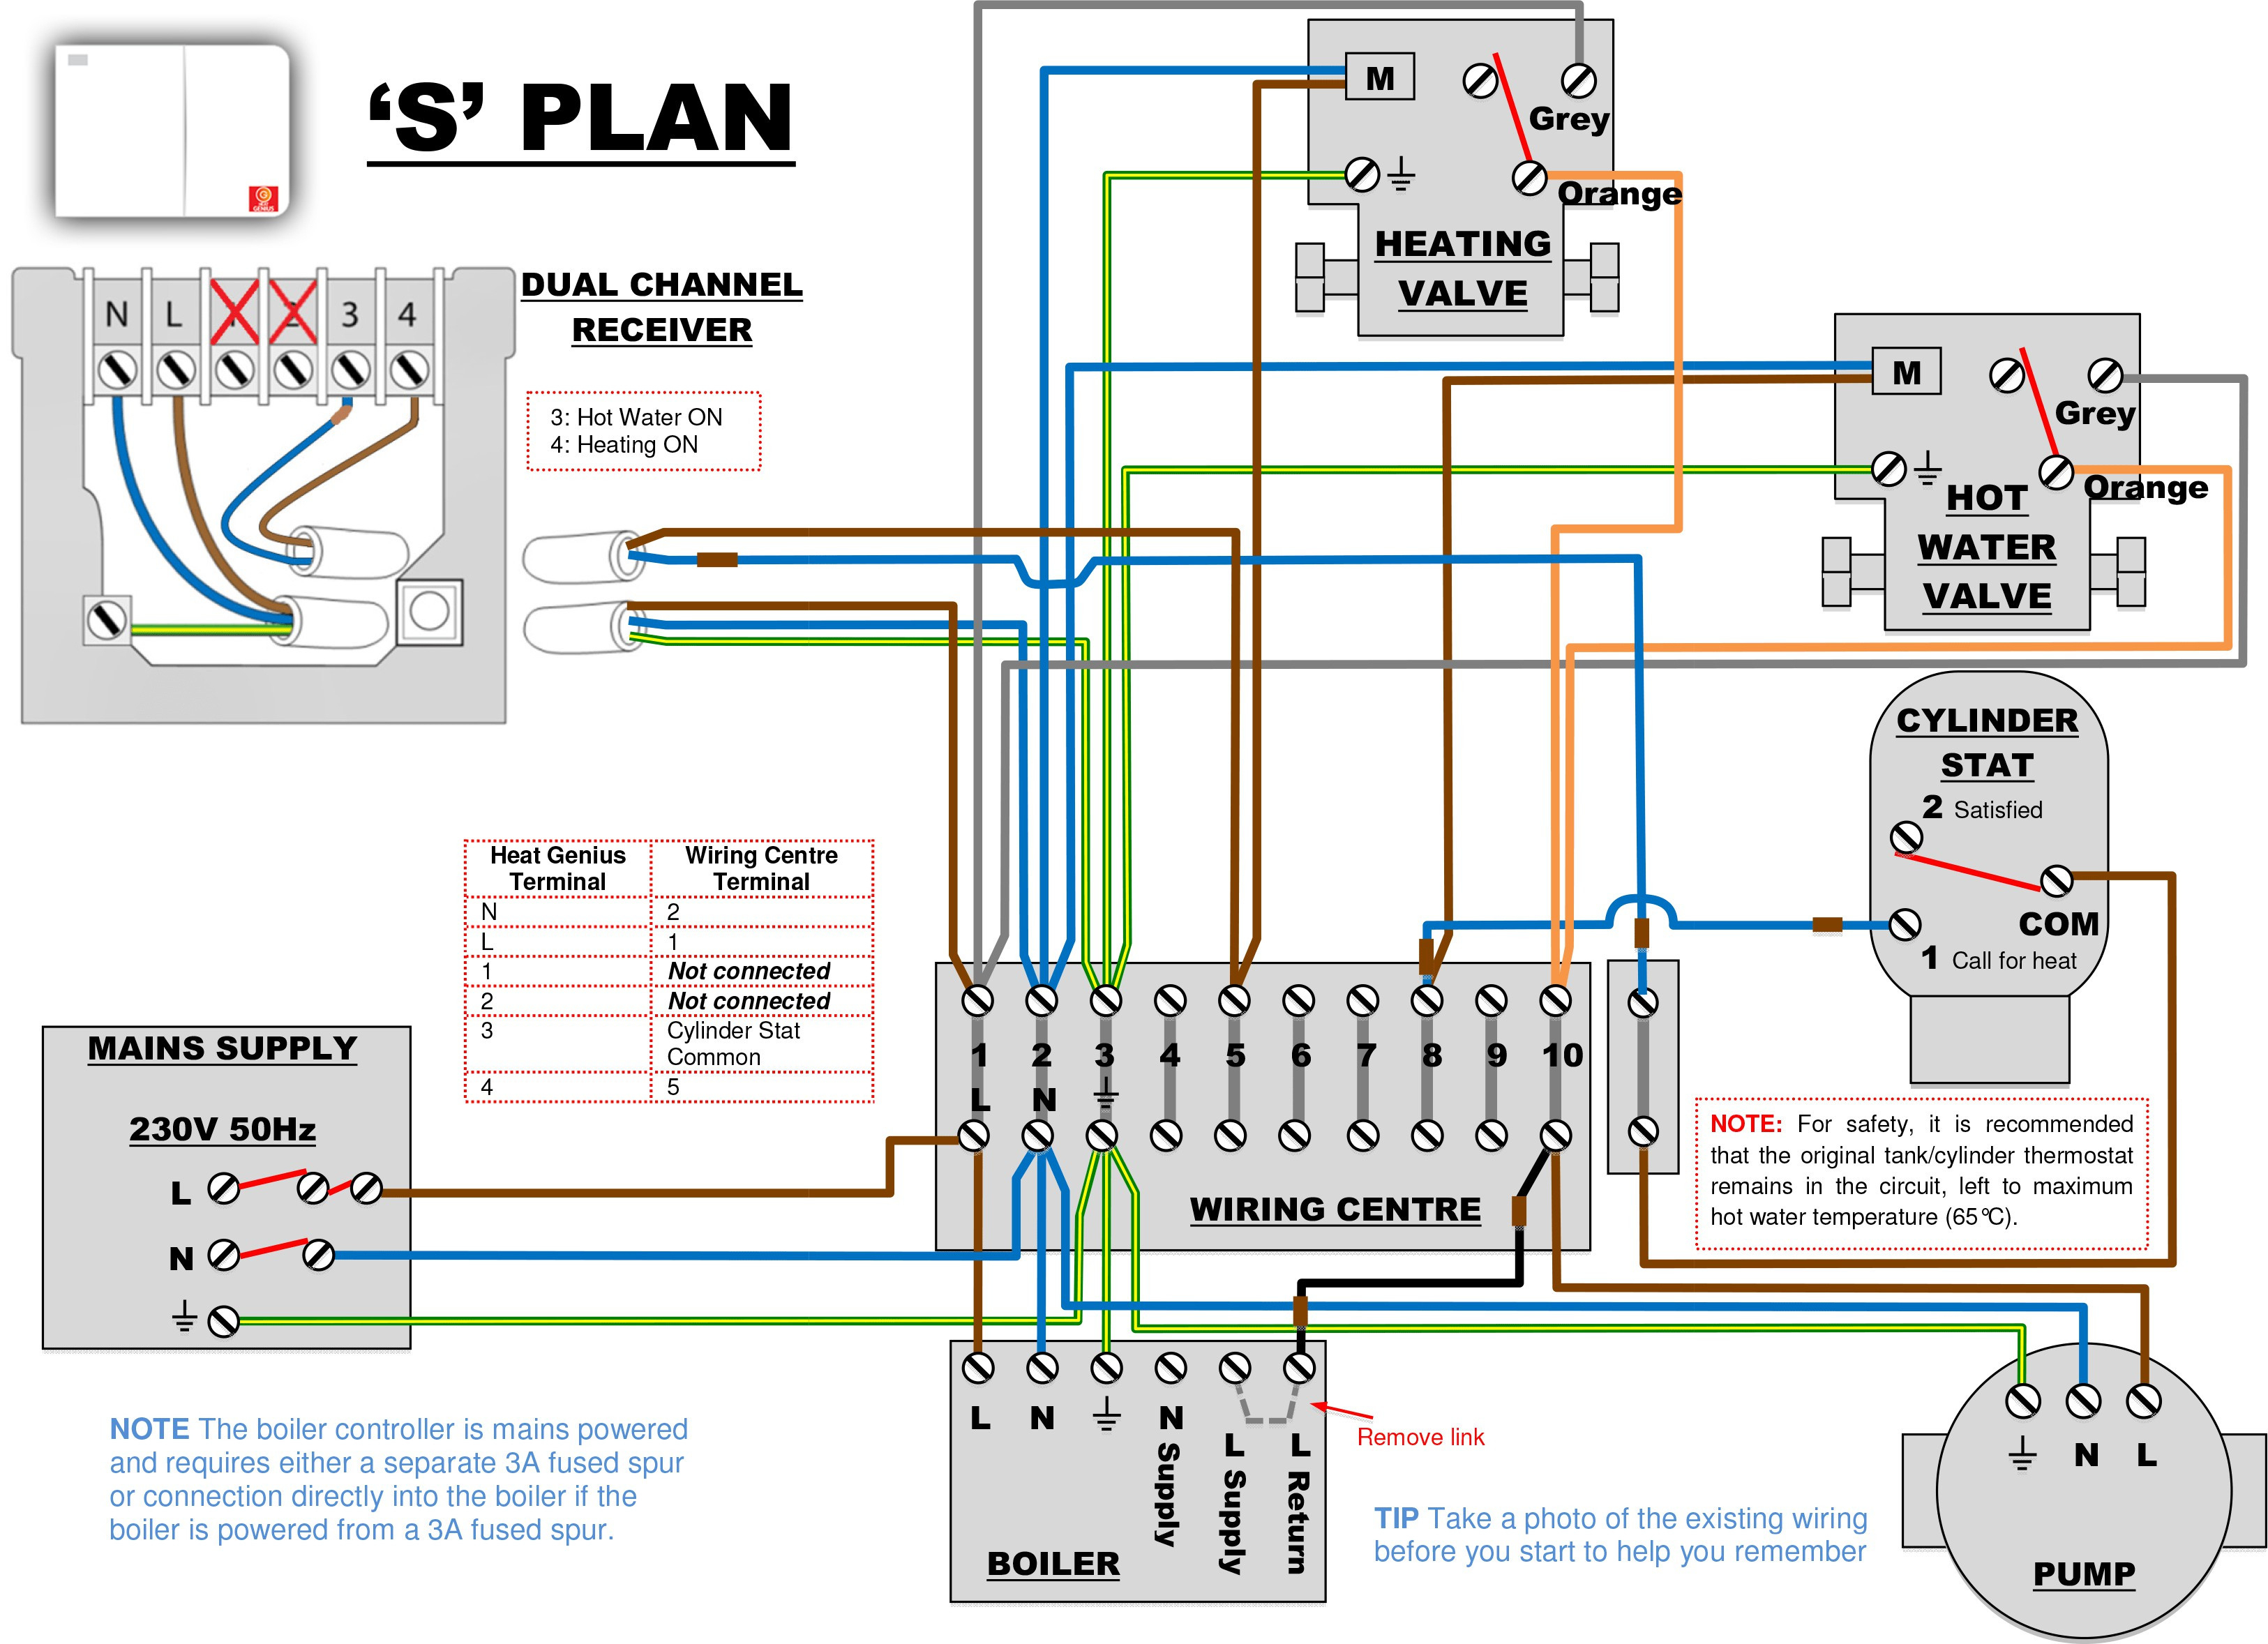 Nest T Stat Wiring Diagram | Wiring Diagram - How Do I Get My Nest Wiring Diagram